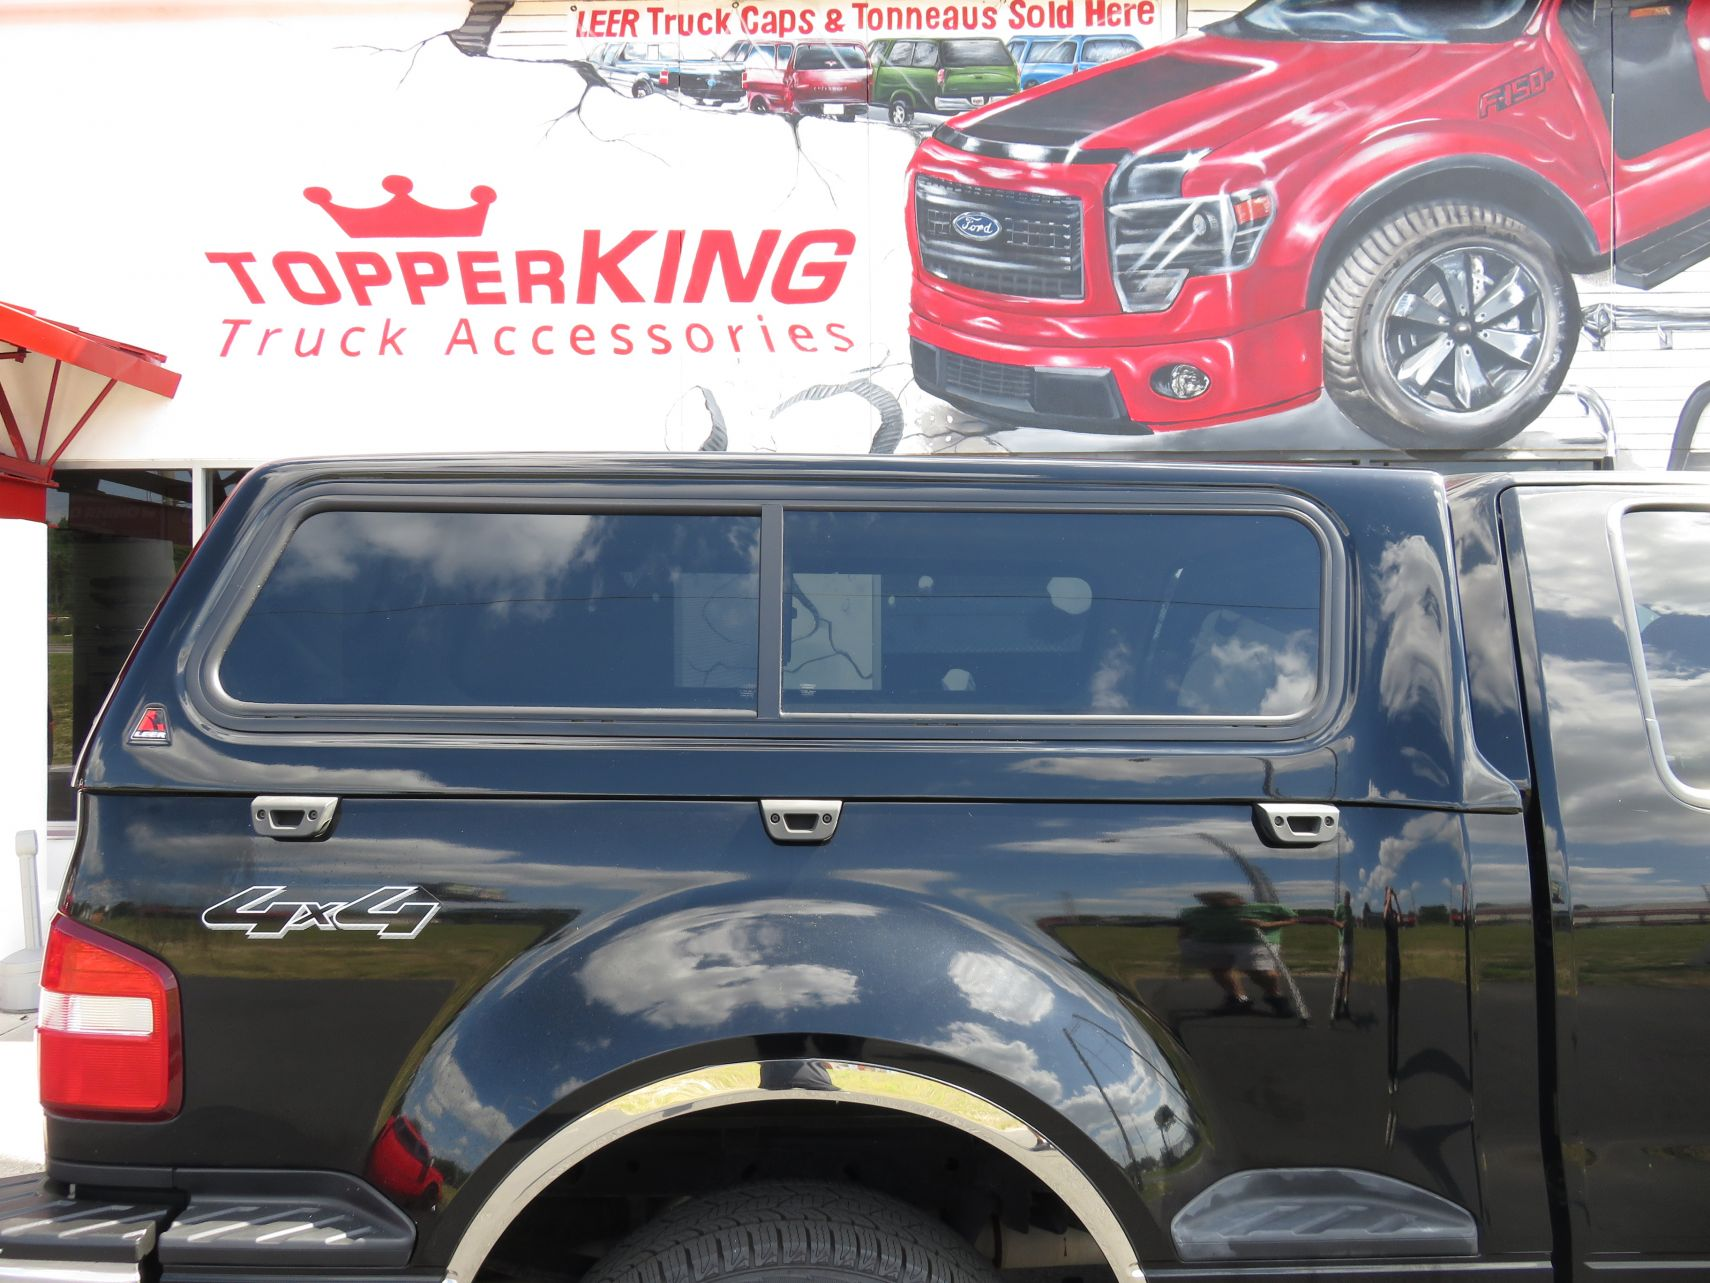 2008 Ford F150 Flareside With LEER 100R And Nerf Bars By TopperKING In Brandon